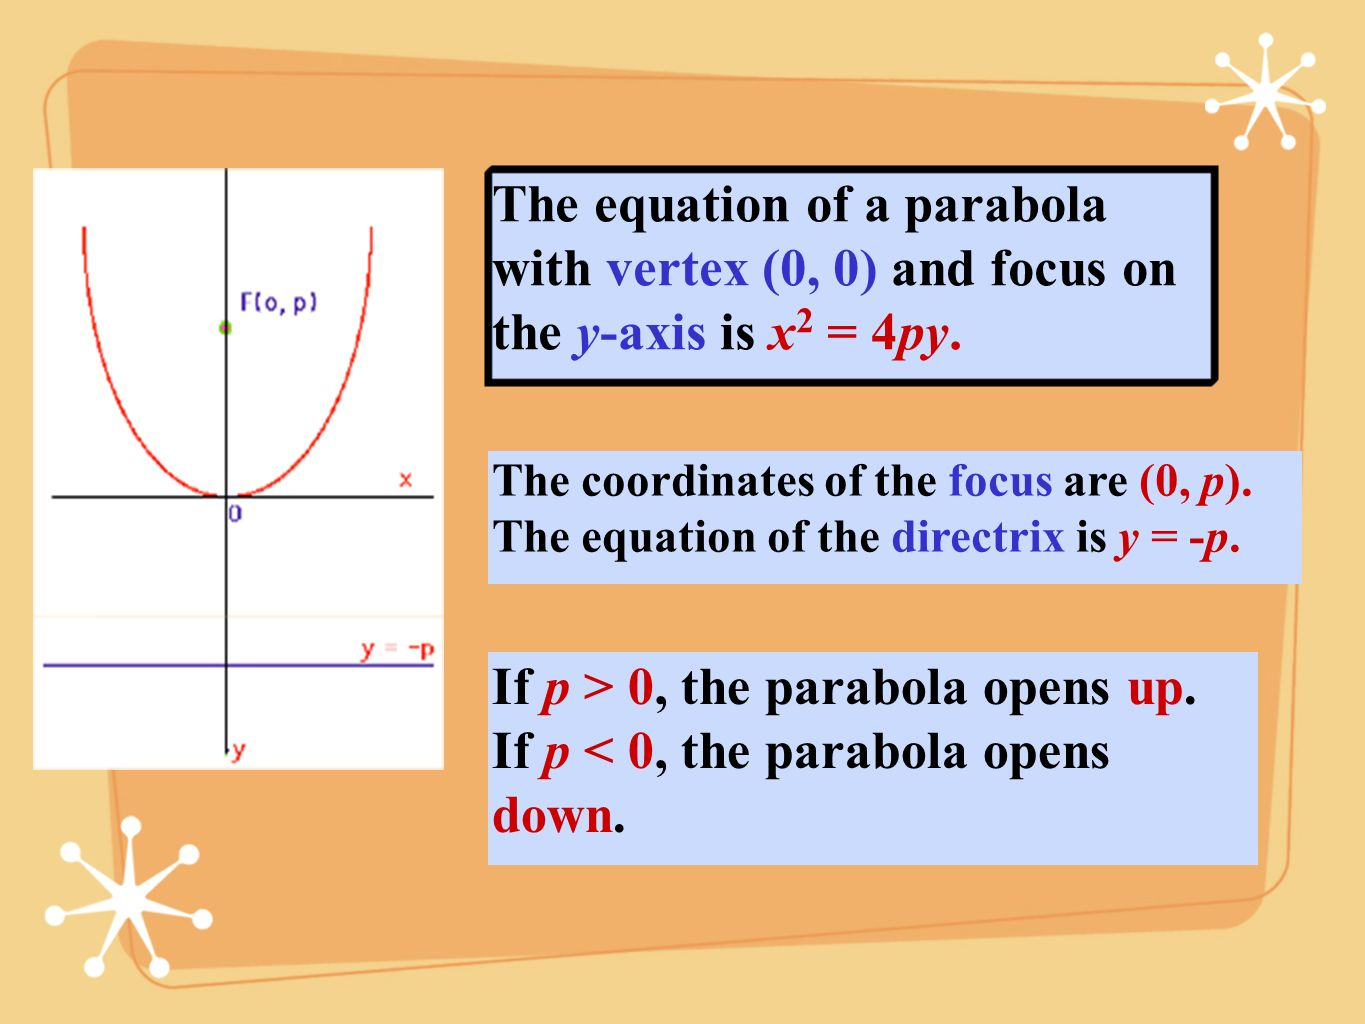 If p > 0, the parabola opens up.